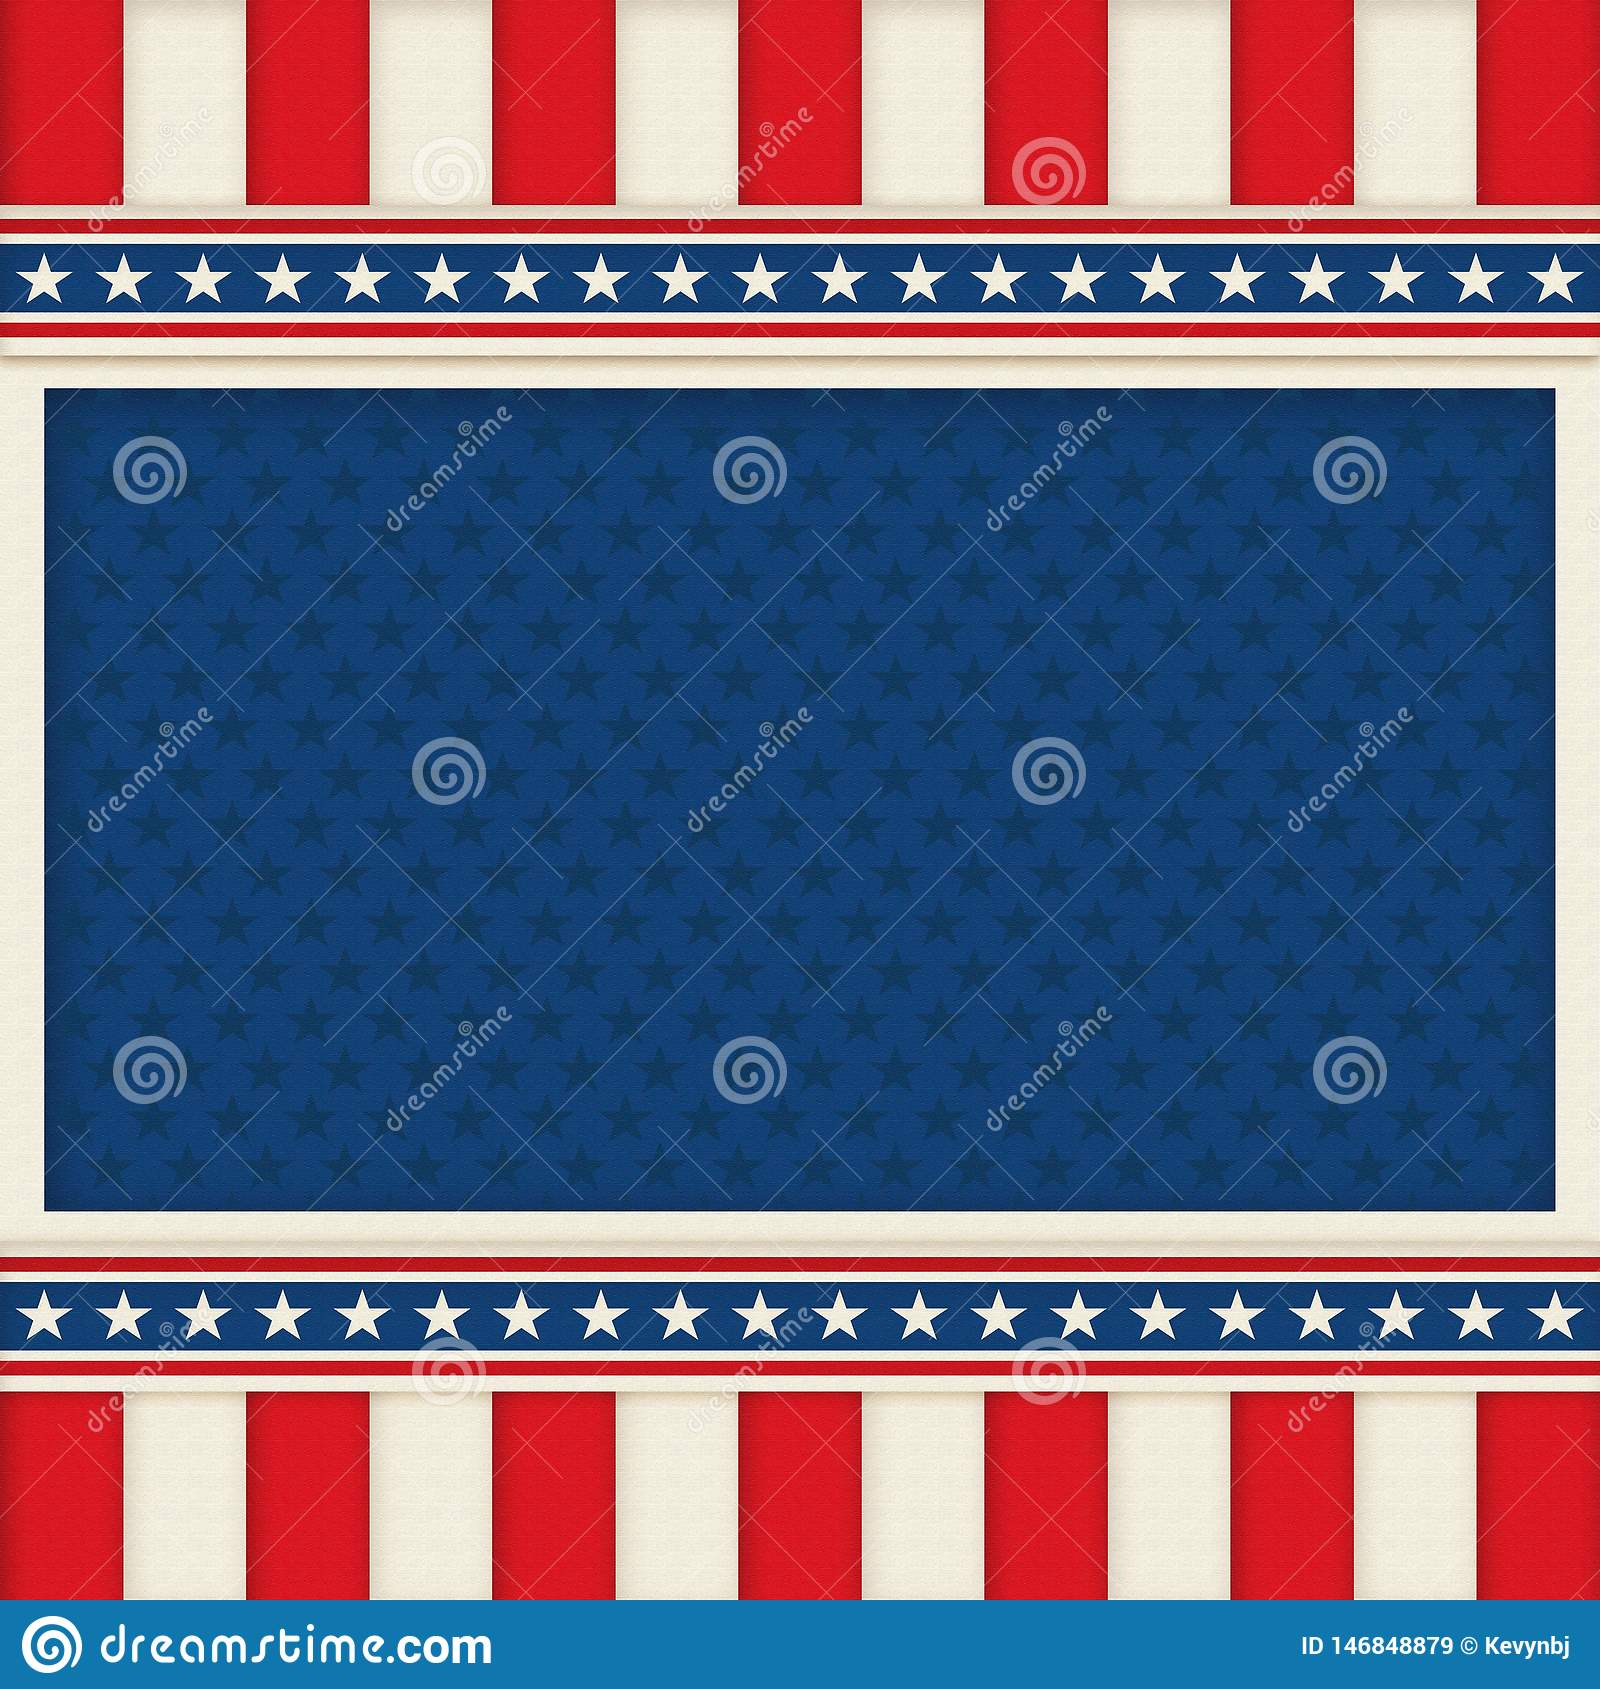 Patriotic Background Poster Art Memorial Day 4th of July